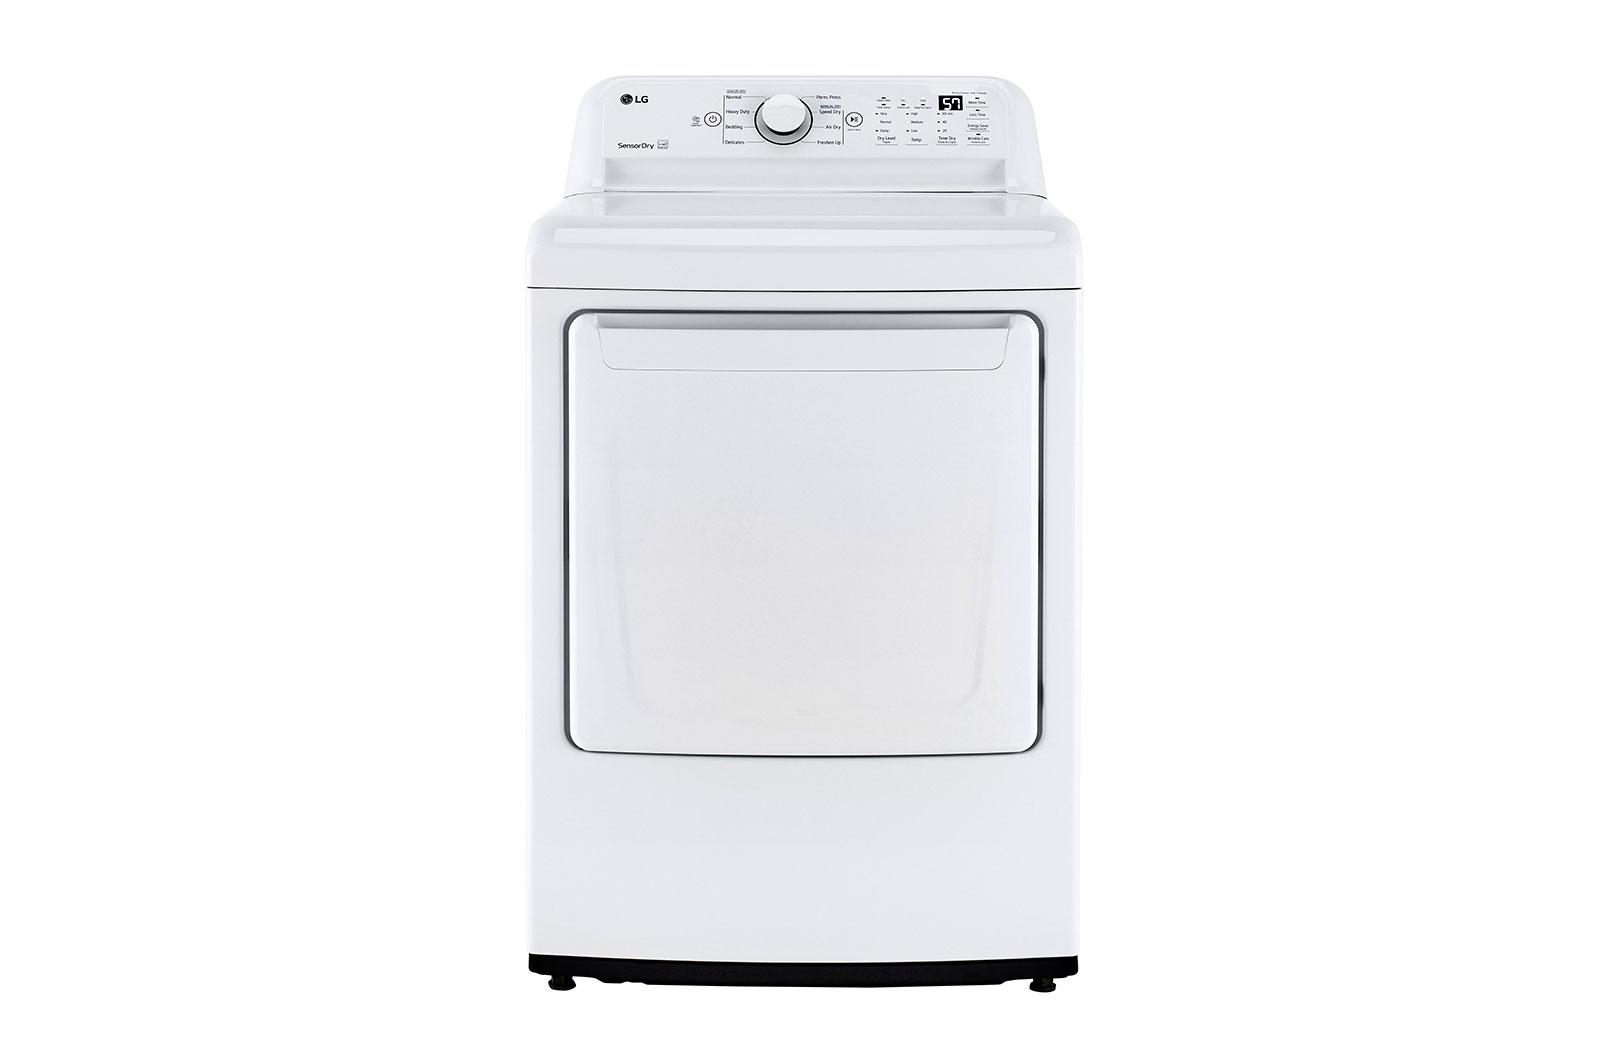 LG Appliances7.3 Cu. Ft. Ultra Large Capacity Top Load Gas Dryer With Sensor Dry Technology